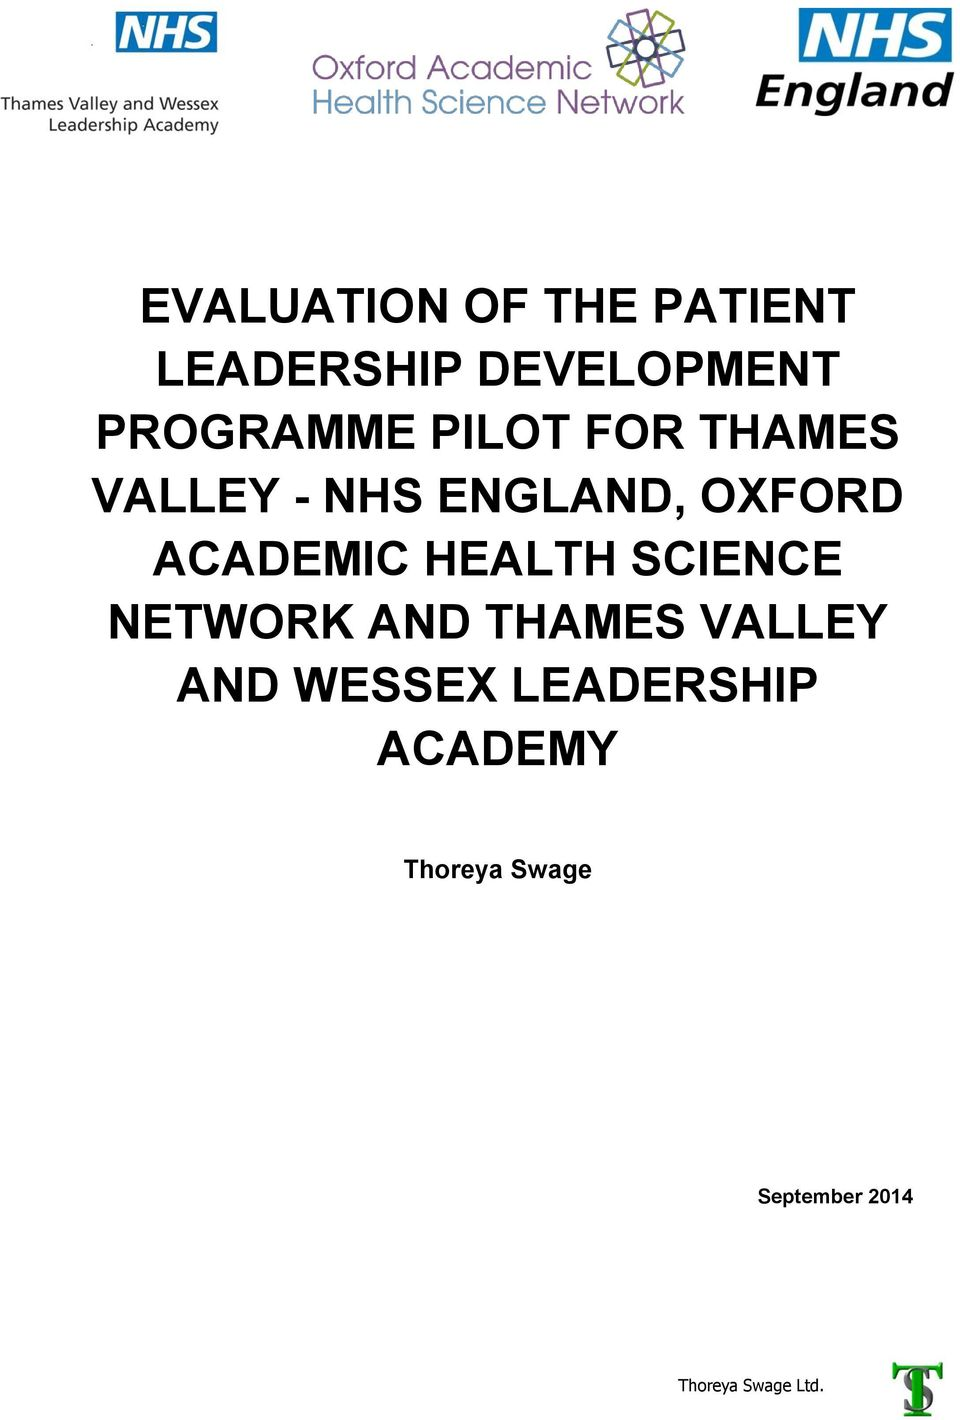 OXFORD ACADEMIC HEALTH SCIENCE NETWORK AND THAMES